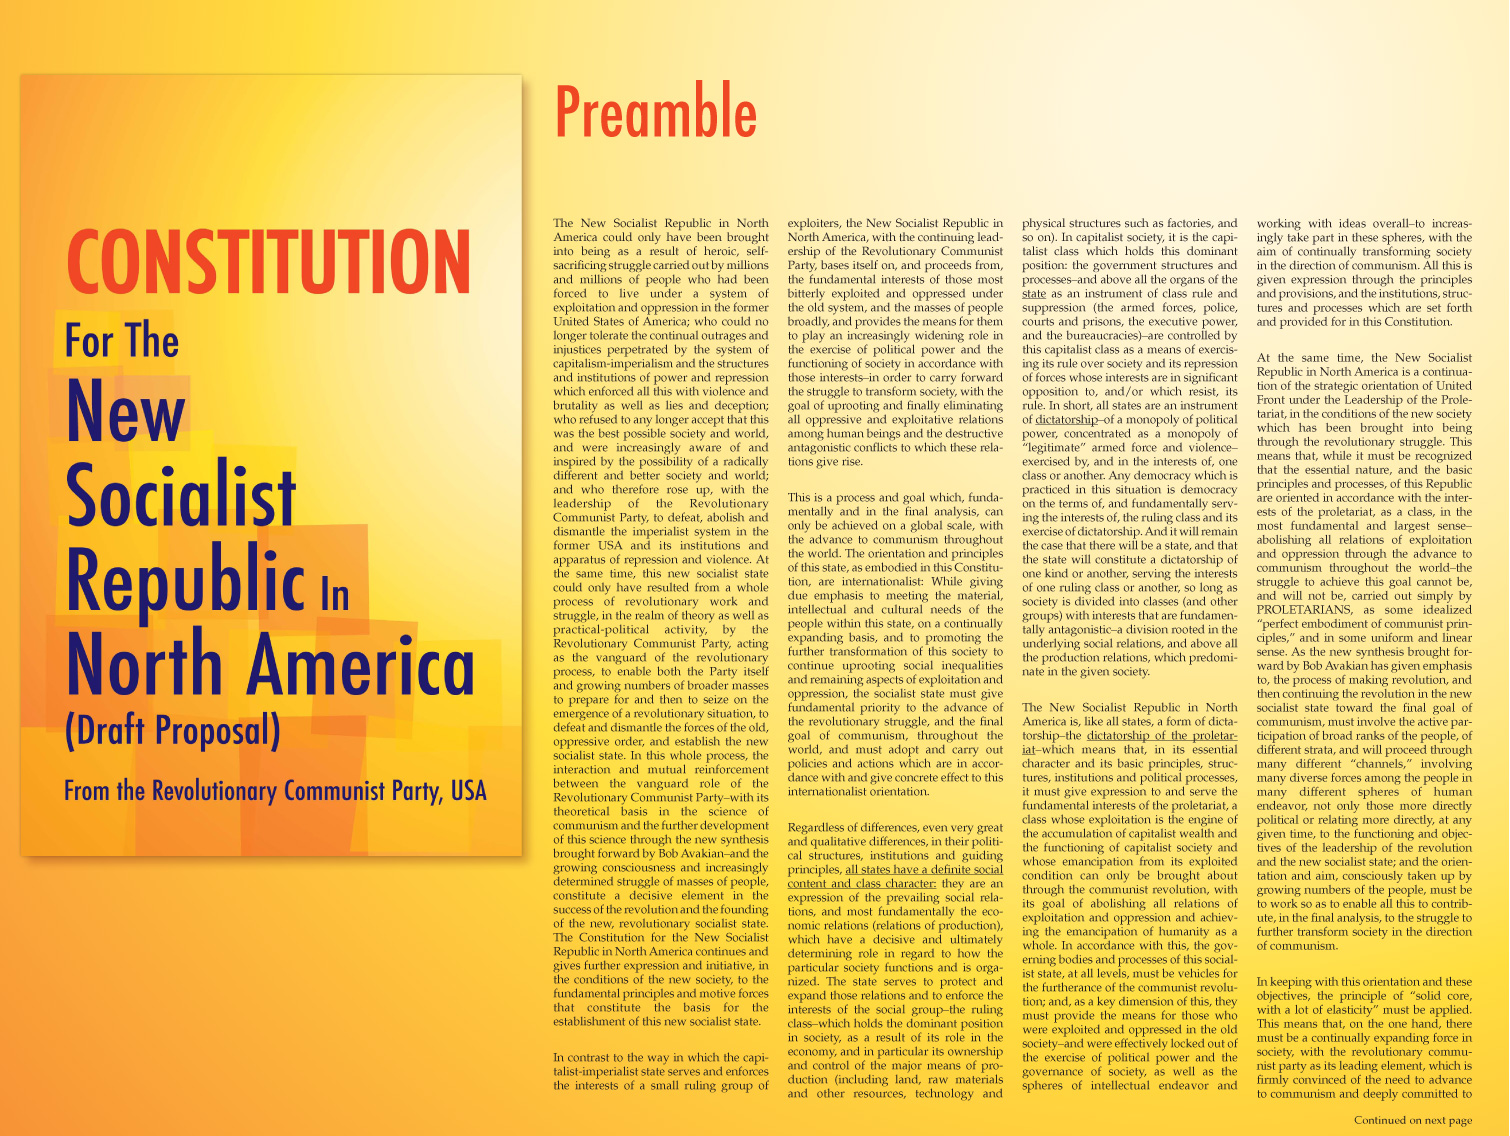 Preamble To The Constitution For The New Socialist